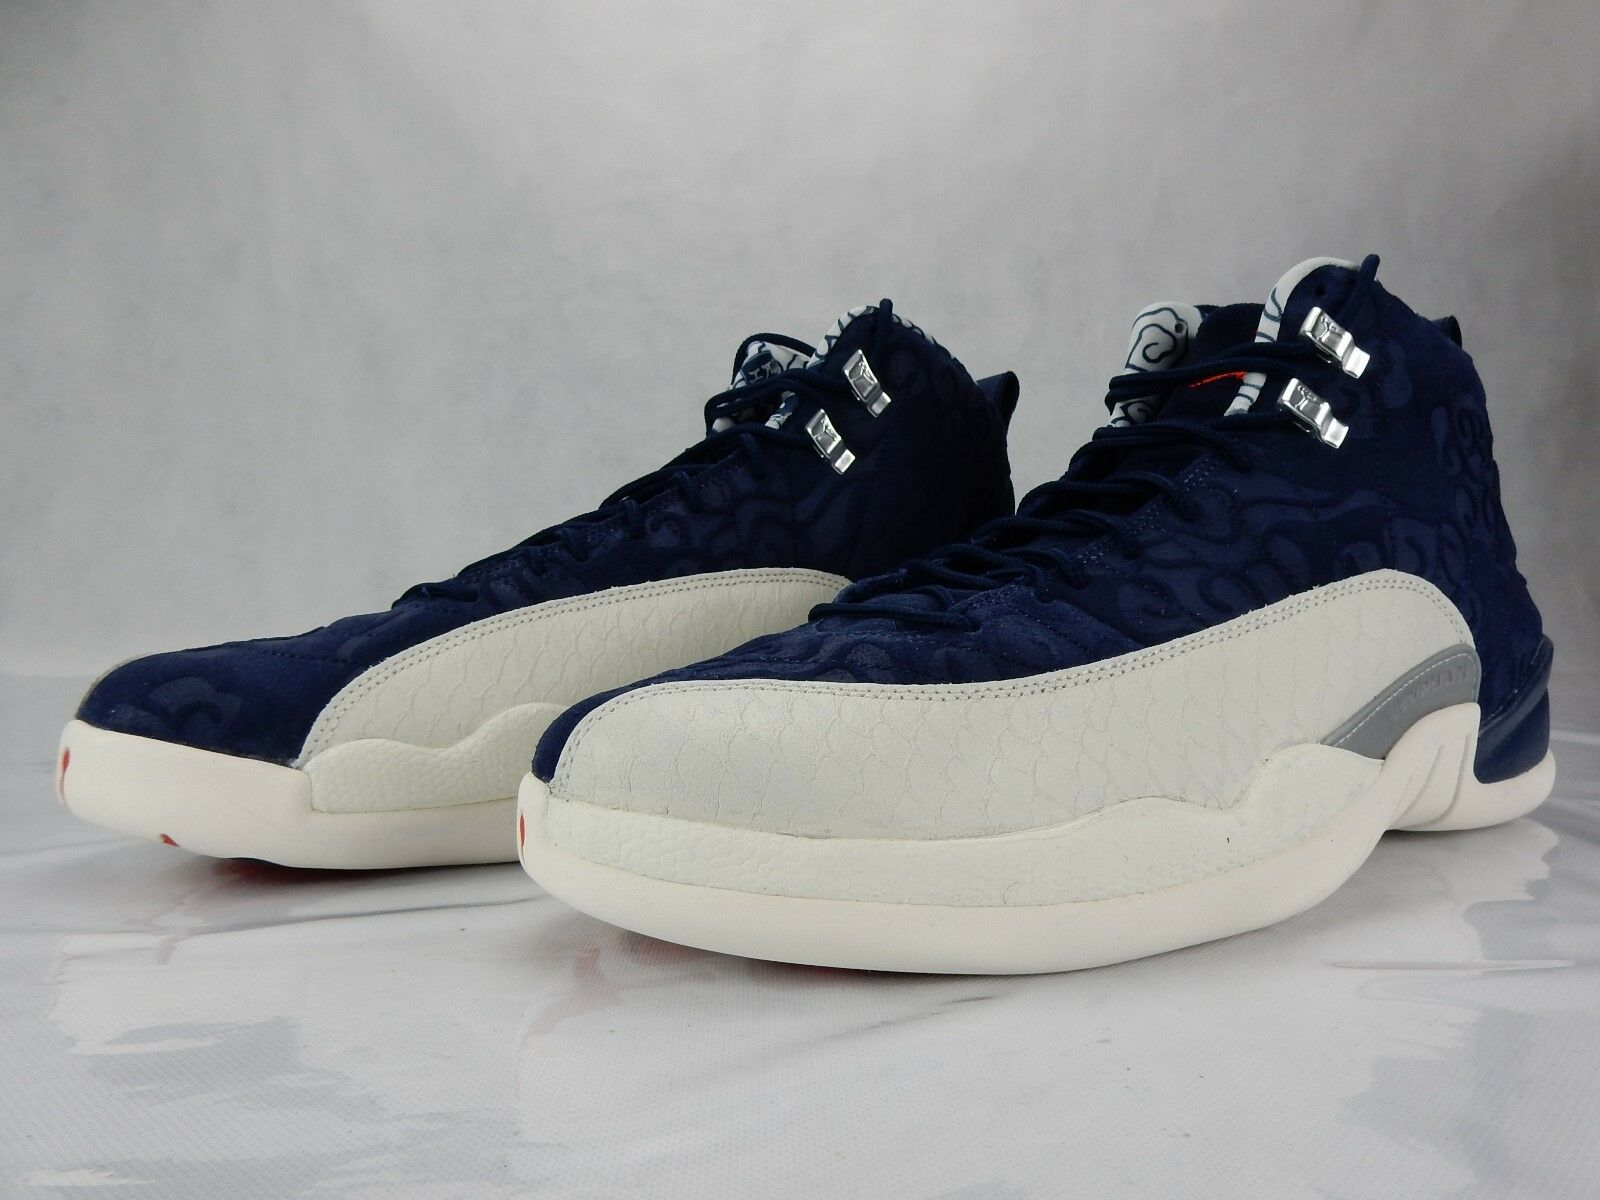 0dc6022e089b2e Nike Air Jordan 12 Retro International Flight College College College Navy  BV8016 445 Size 11 DS